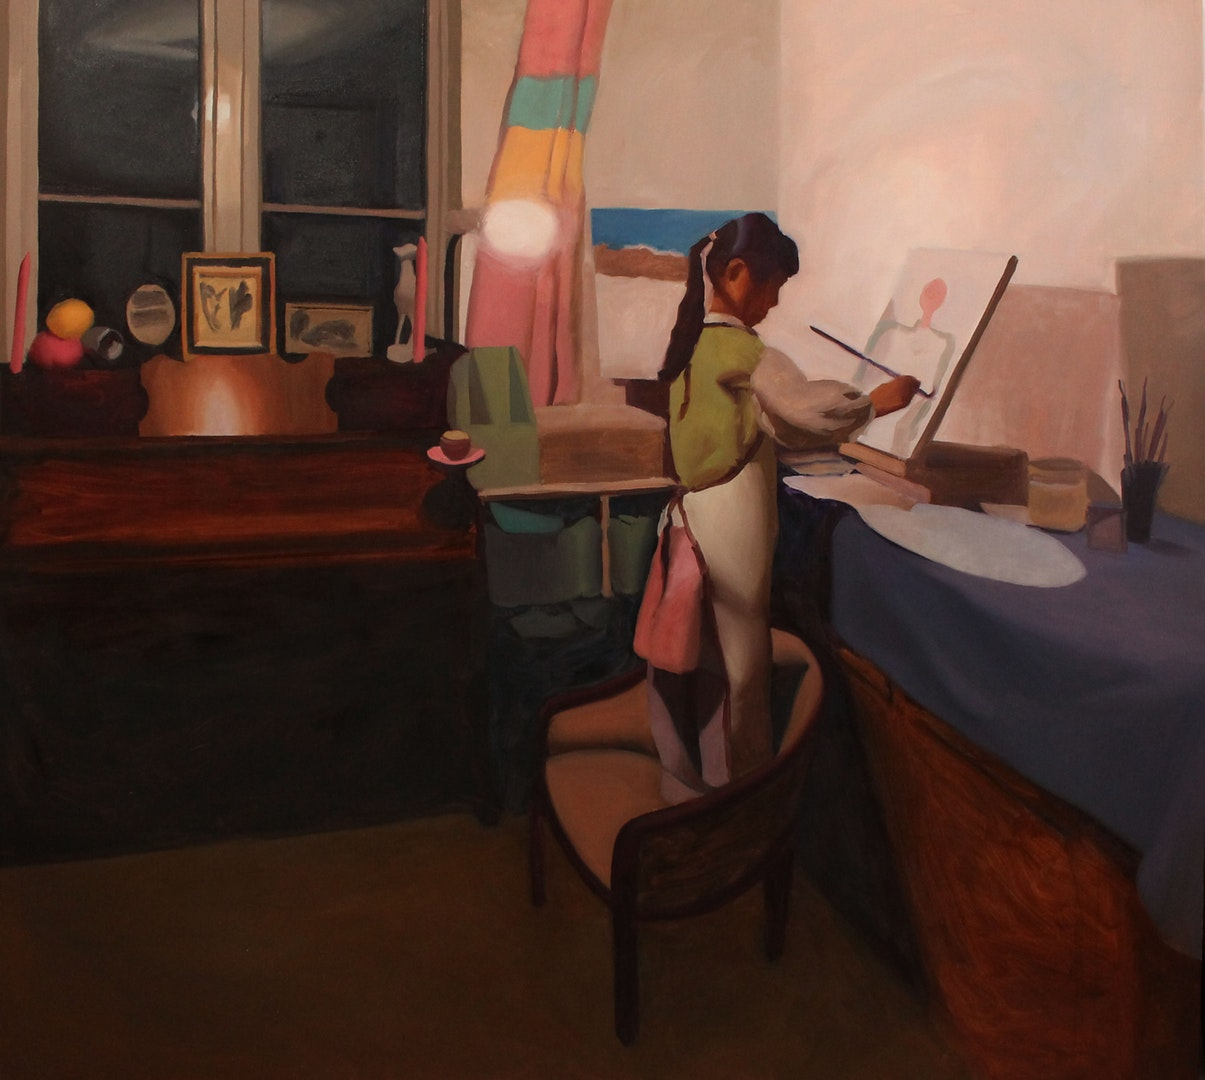 Helen Perkins  Isabella painting  Oil on canvas, 110 x 150 x 3 cm  http://www.helenperkins.co.uk